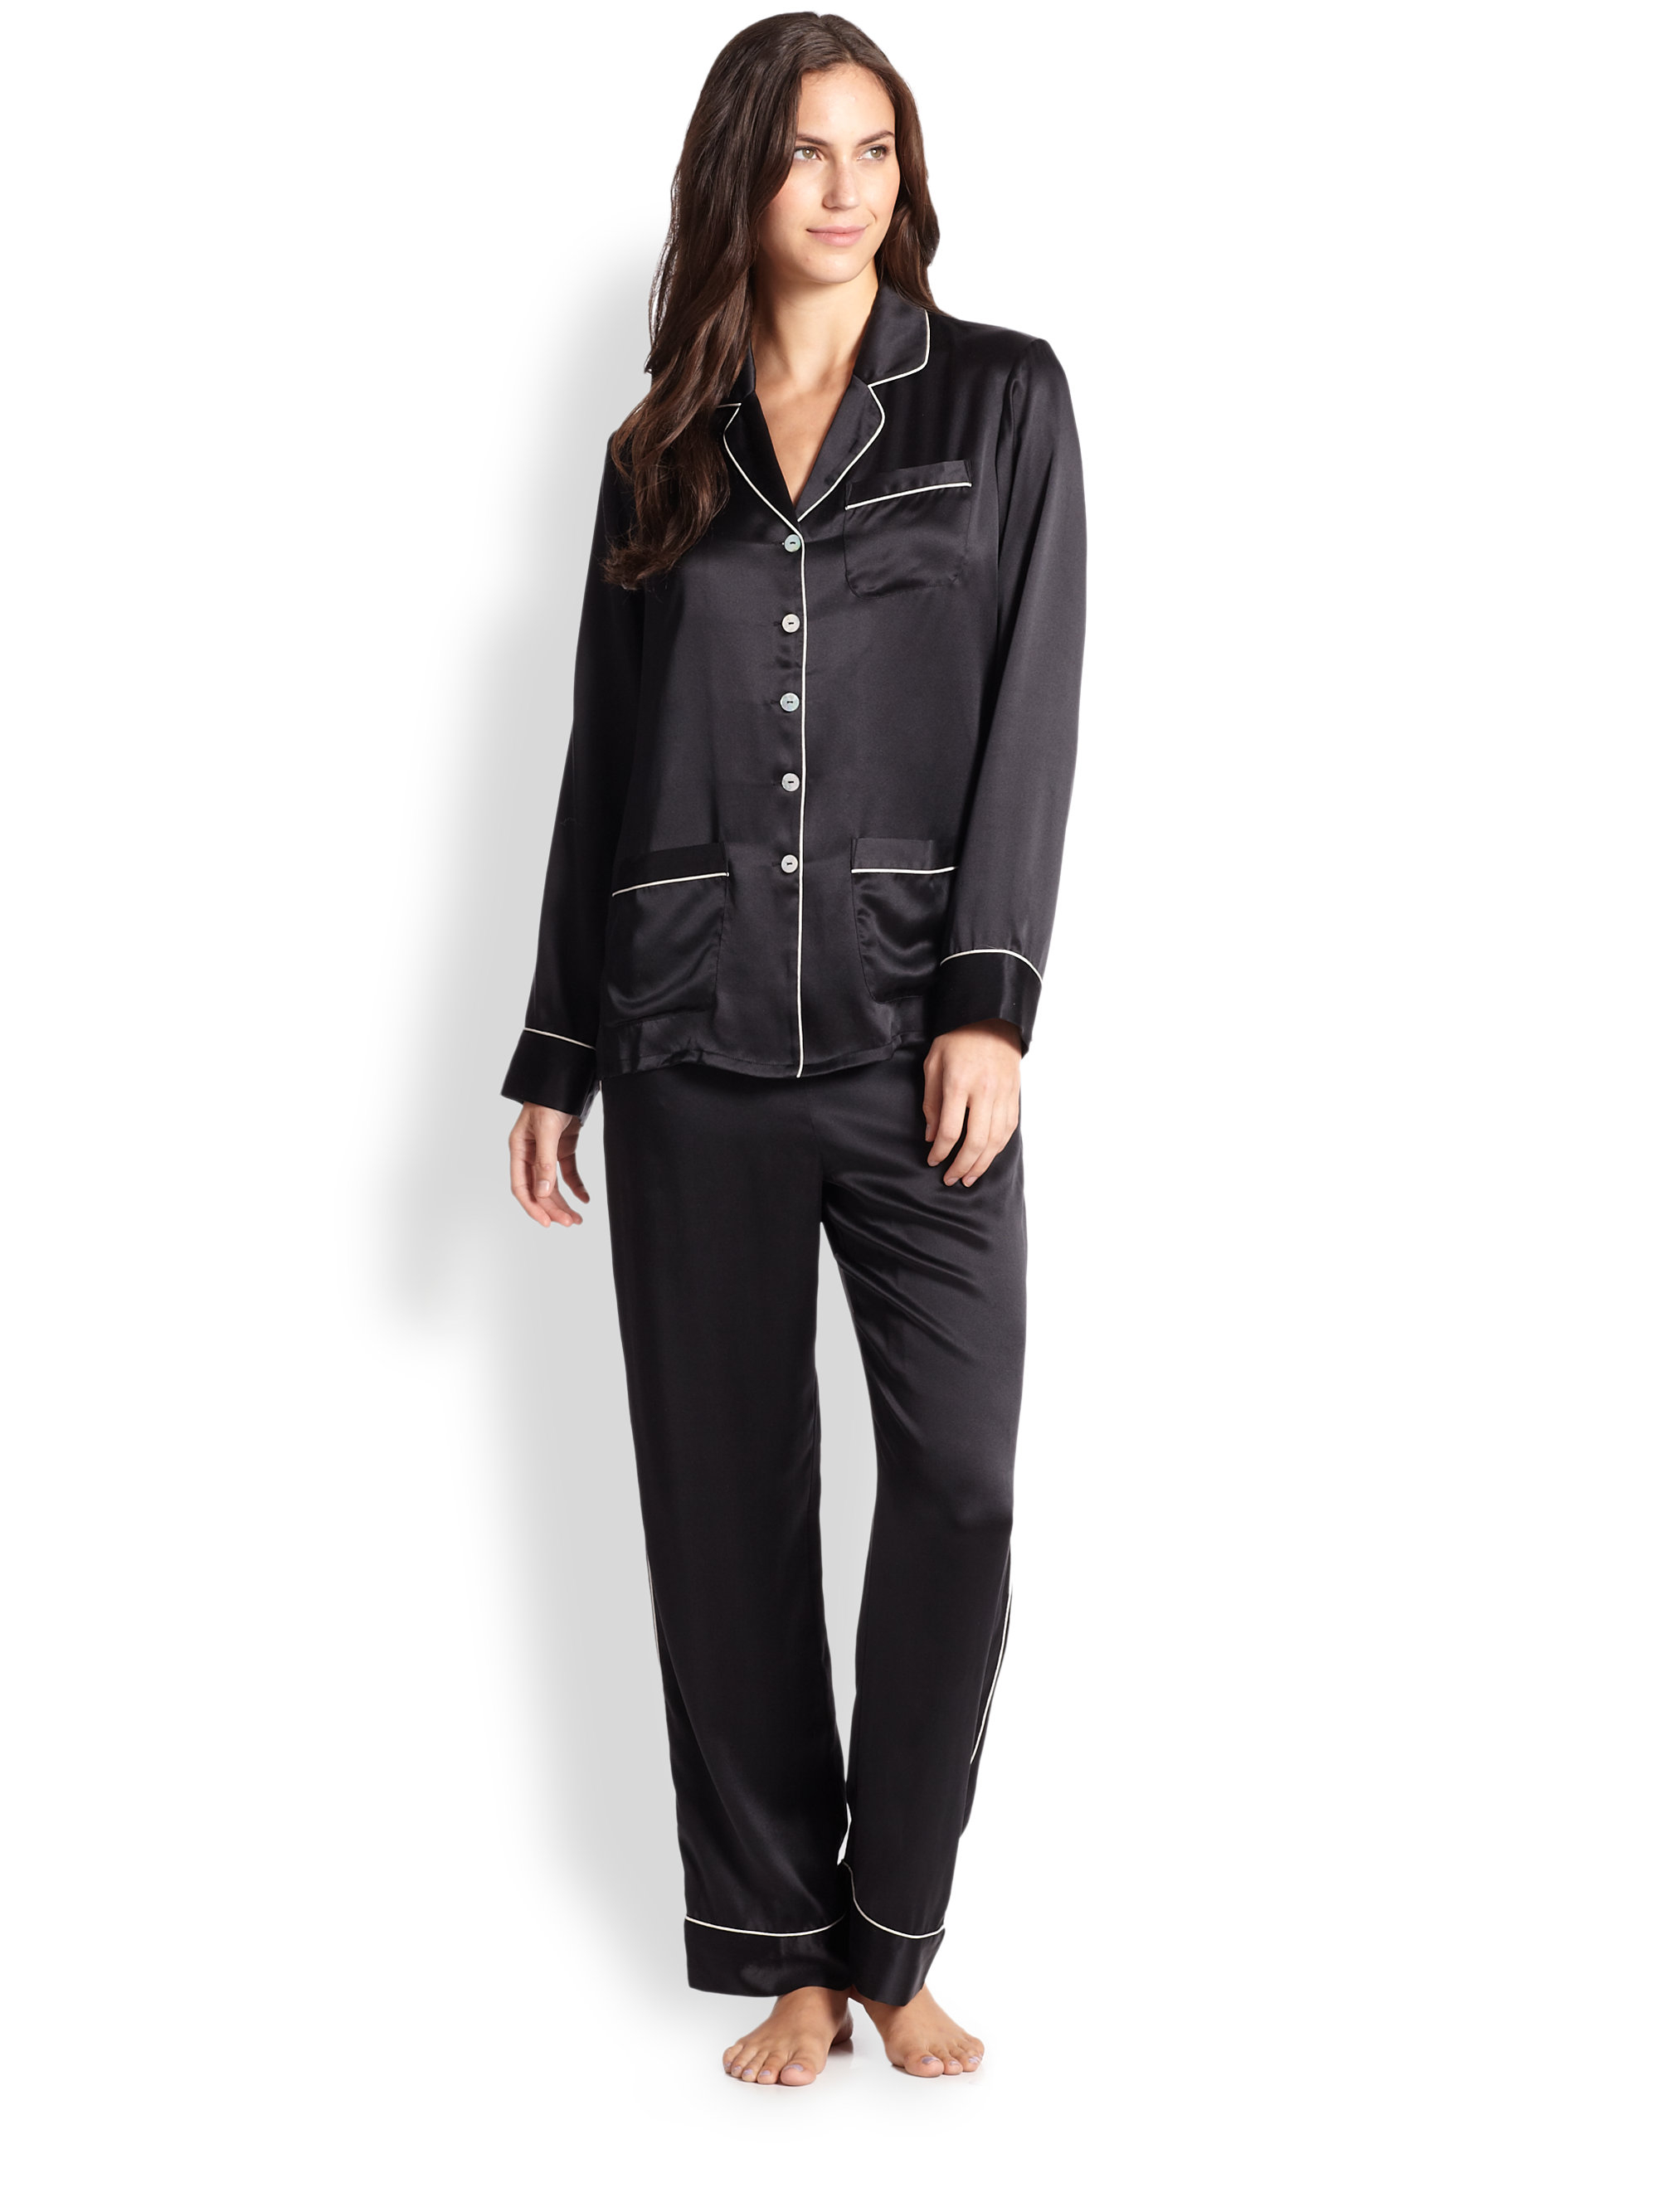 Black Silk Pajamas: Olivia Von Halle Silk Satin Pajamas In Black